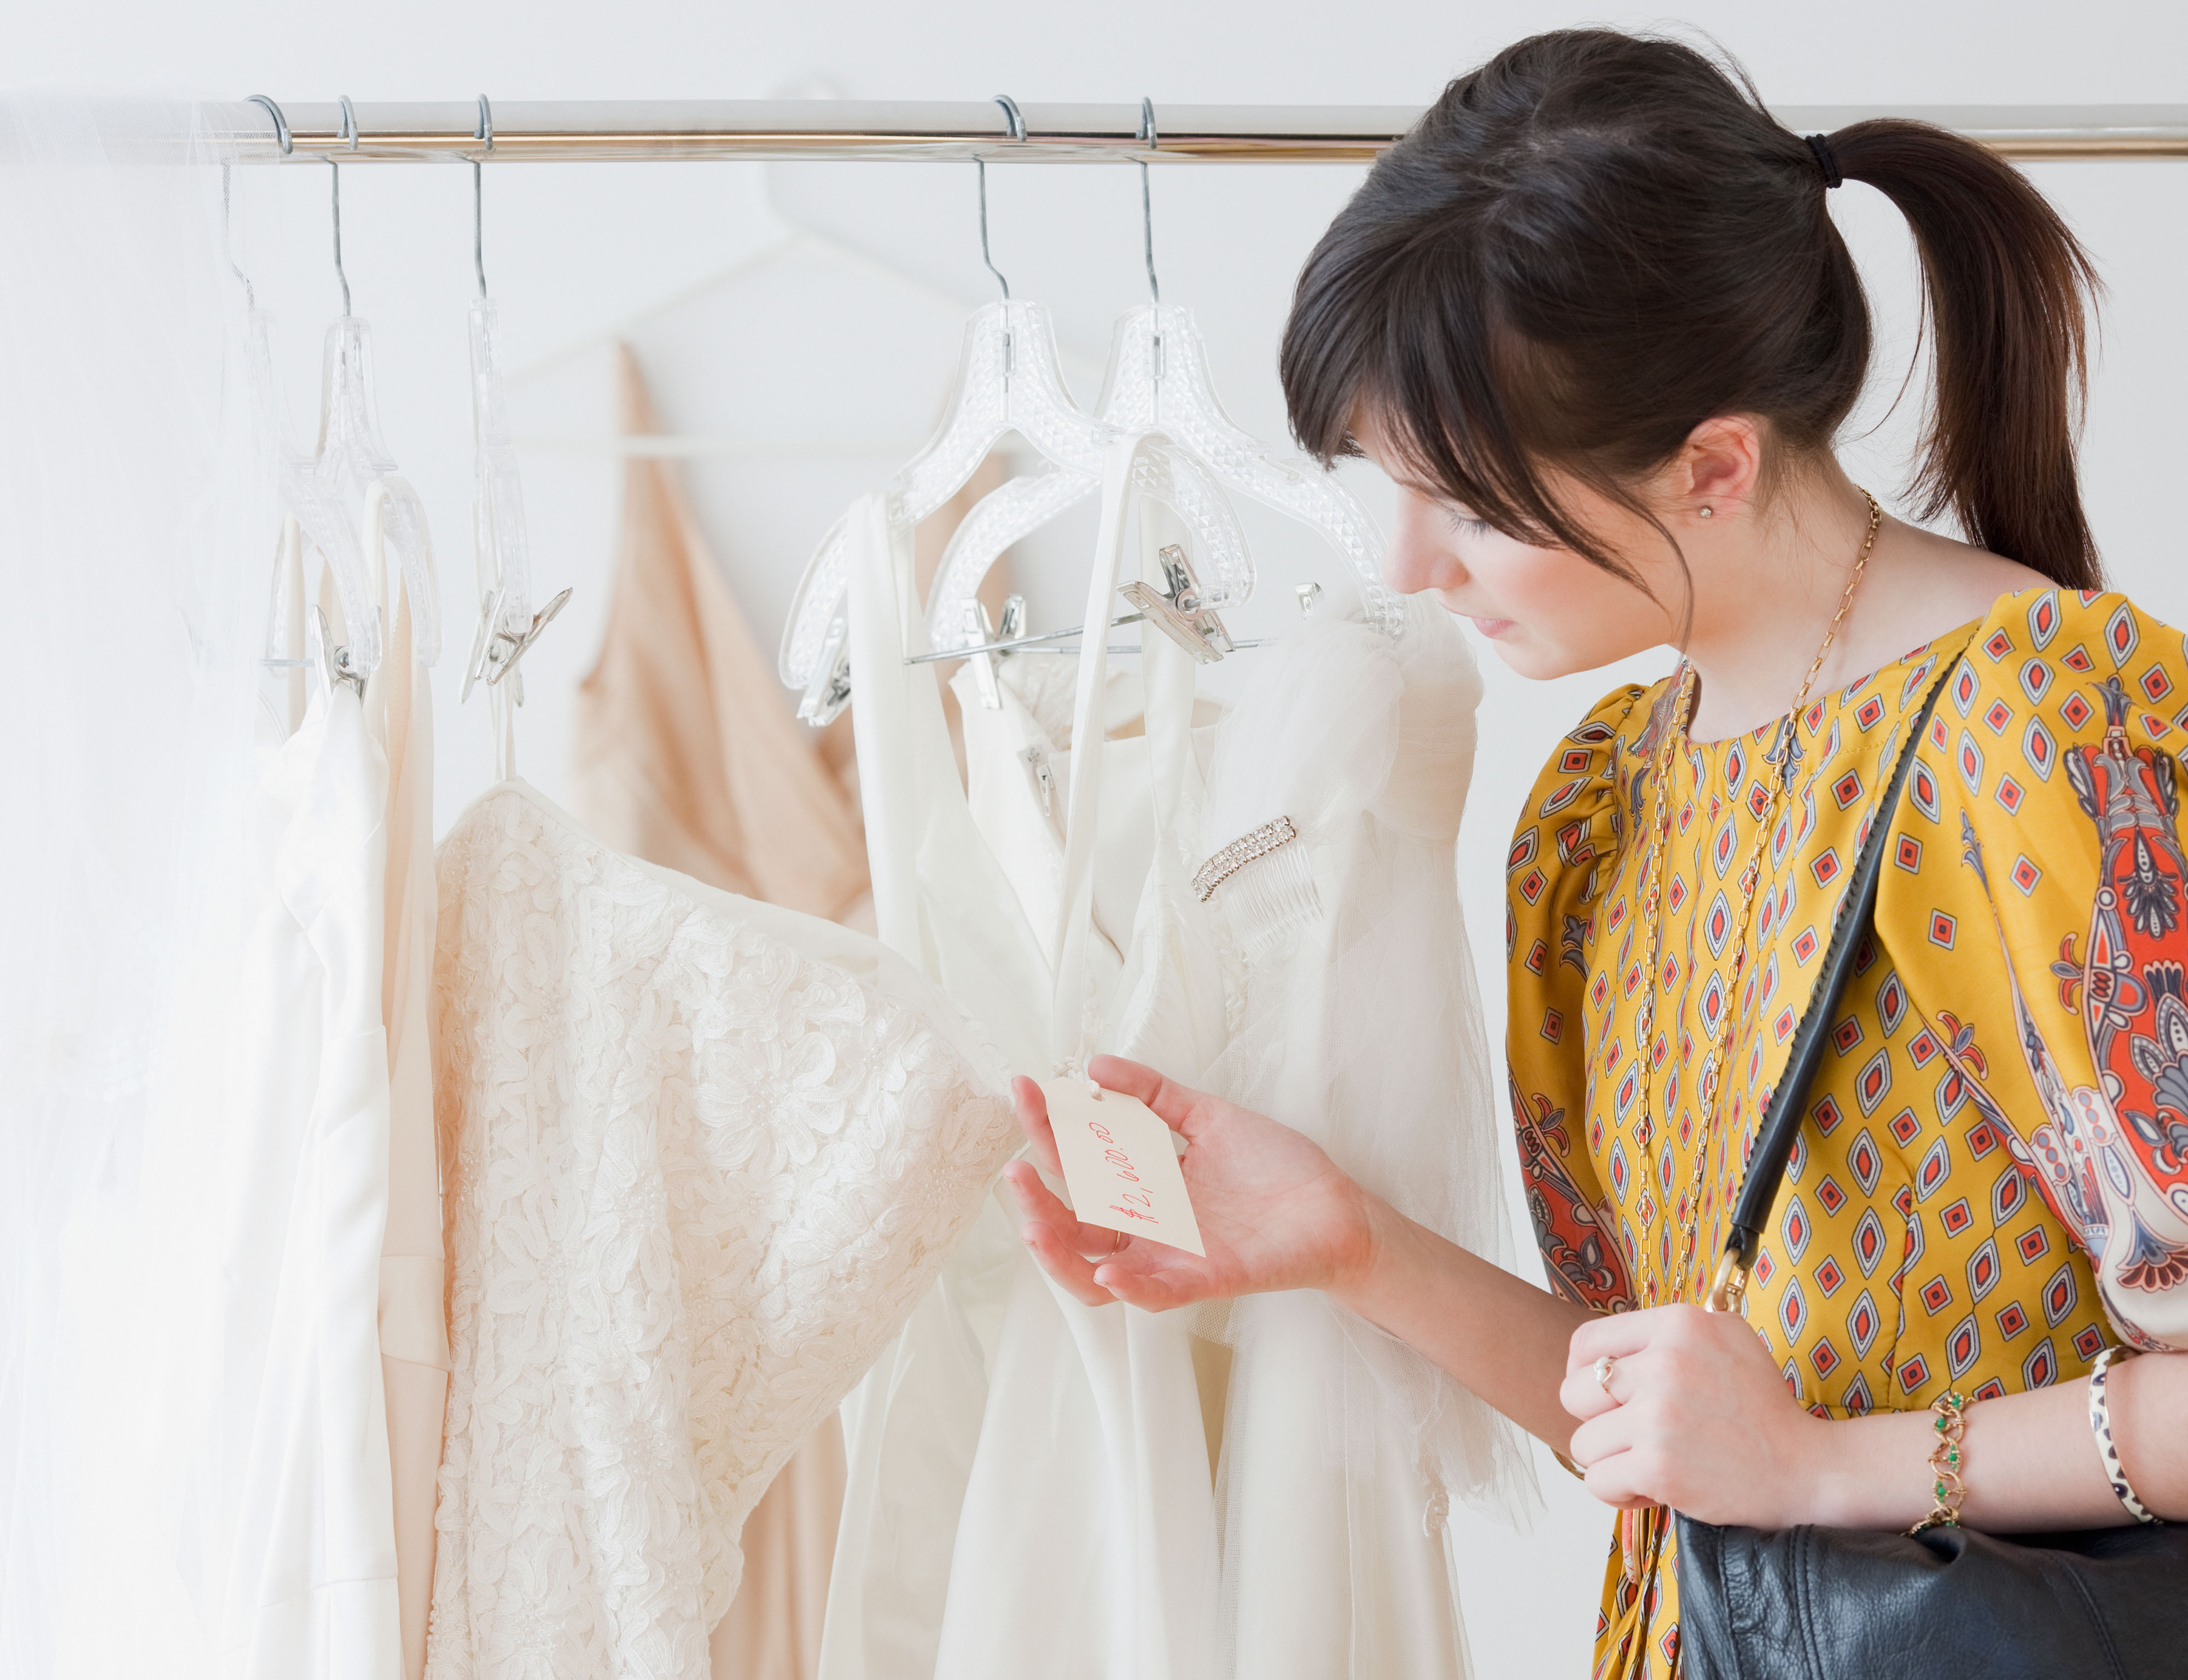 Is It Ever a Good Idea to Try on a Wedding Dress That You Know Is Too Expensive?